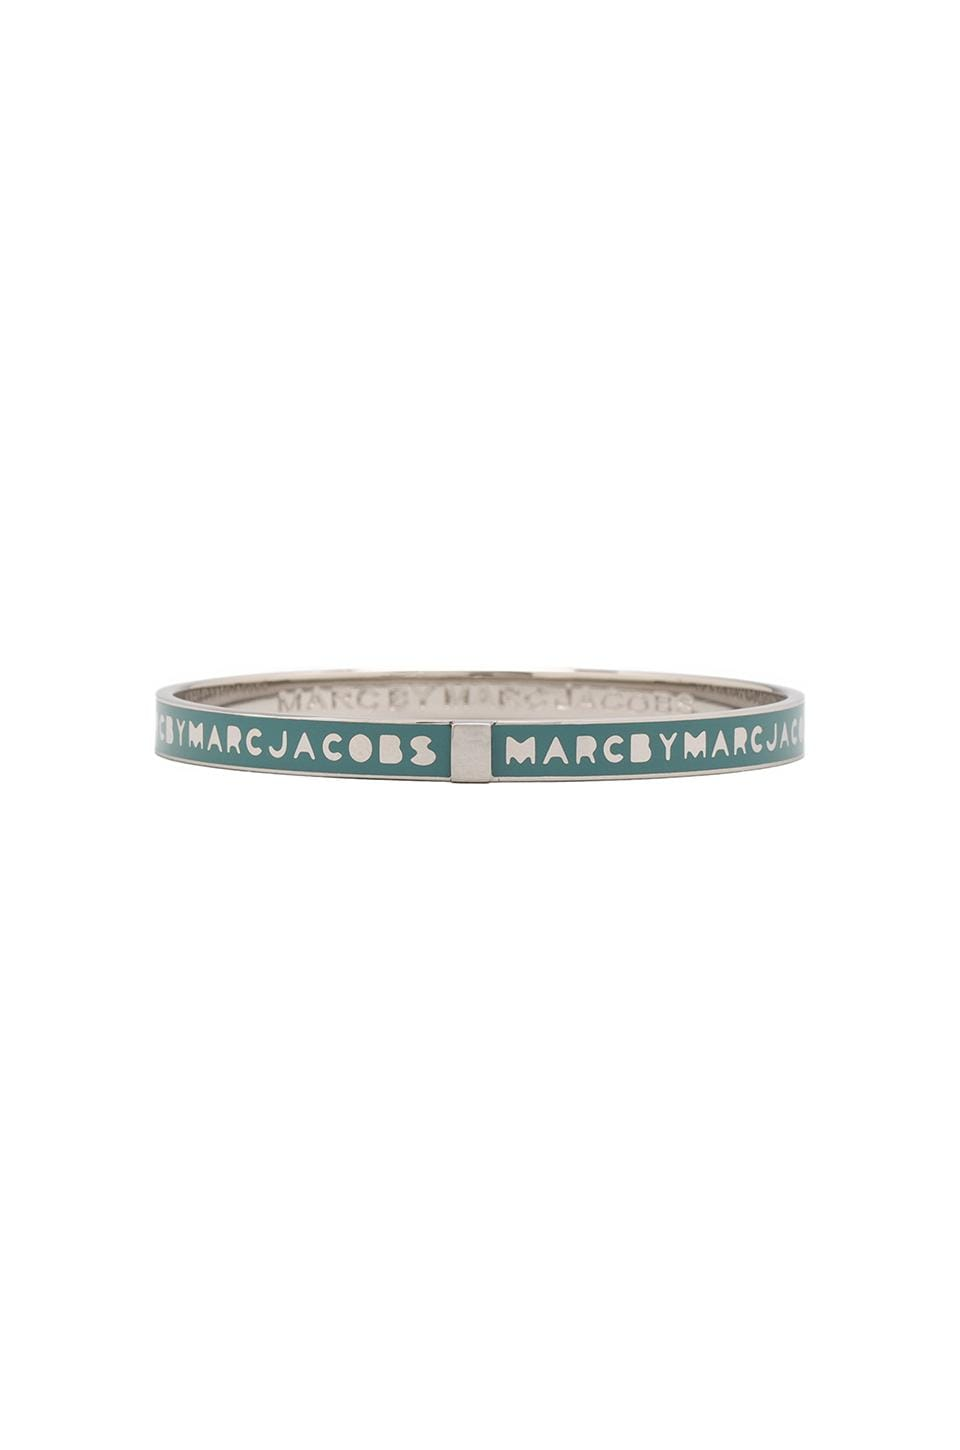 Marc by Marc Jacobs Skinny Logo Bangle in Aqua Lagoon (Argento)